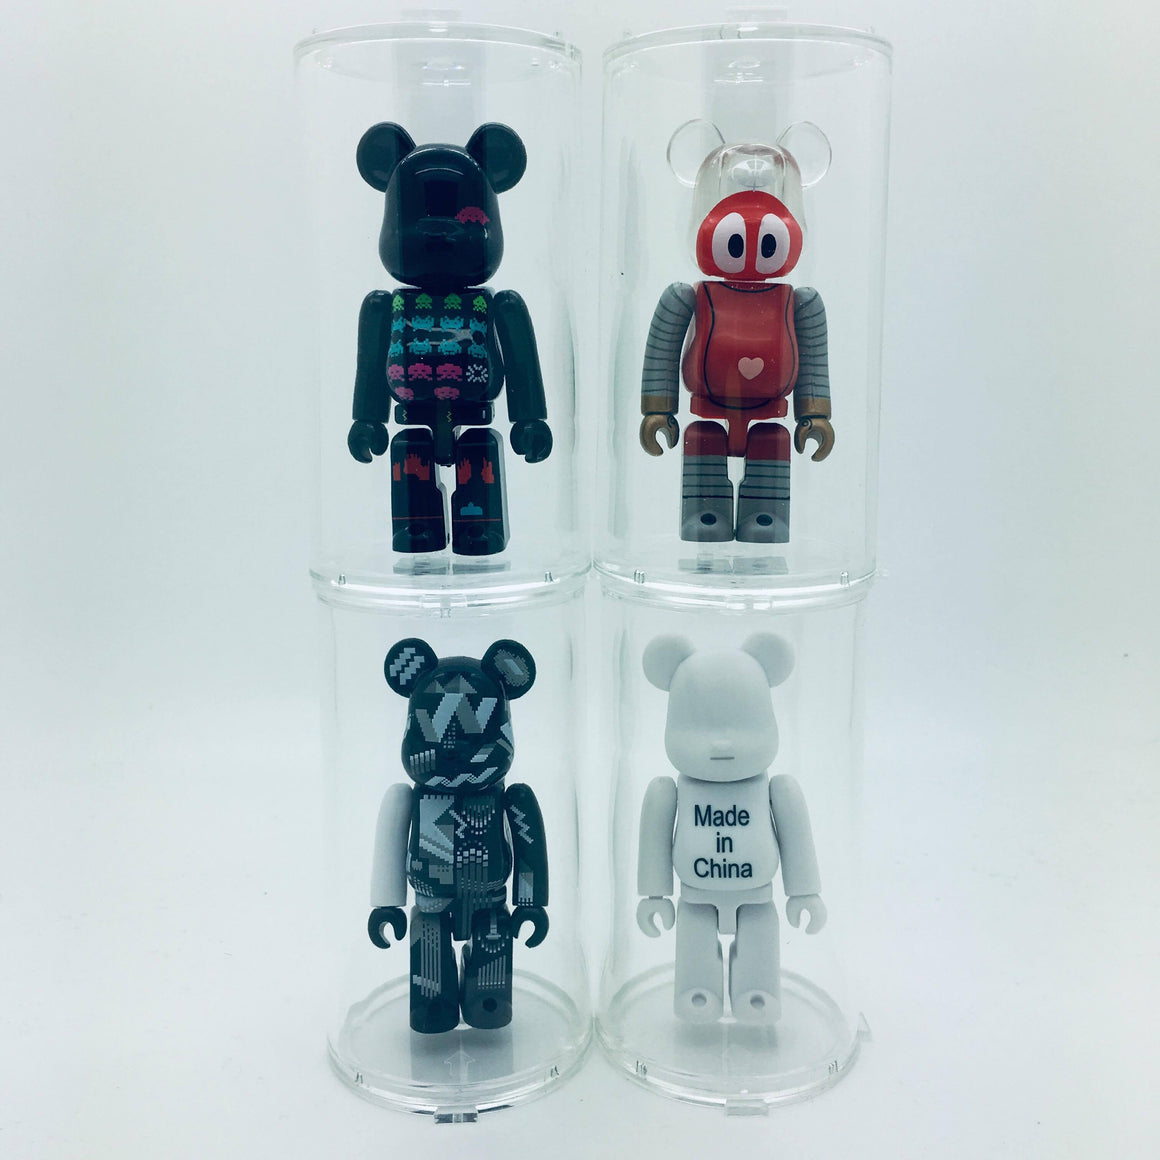 Clear Round Display Case for Bearbrick 100% - Single Case